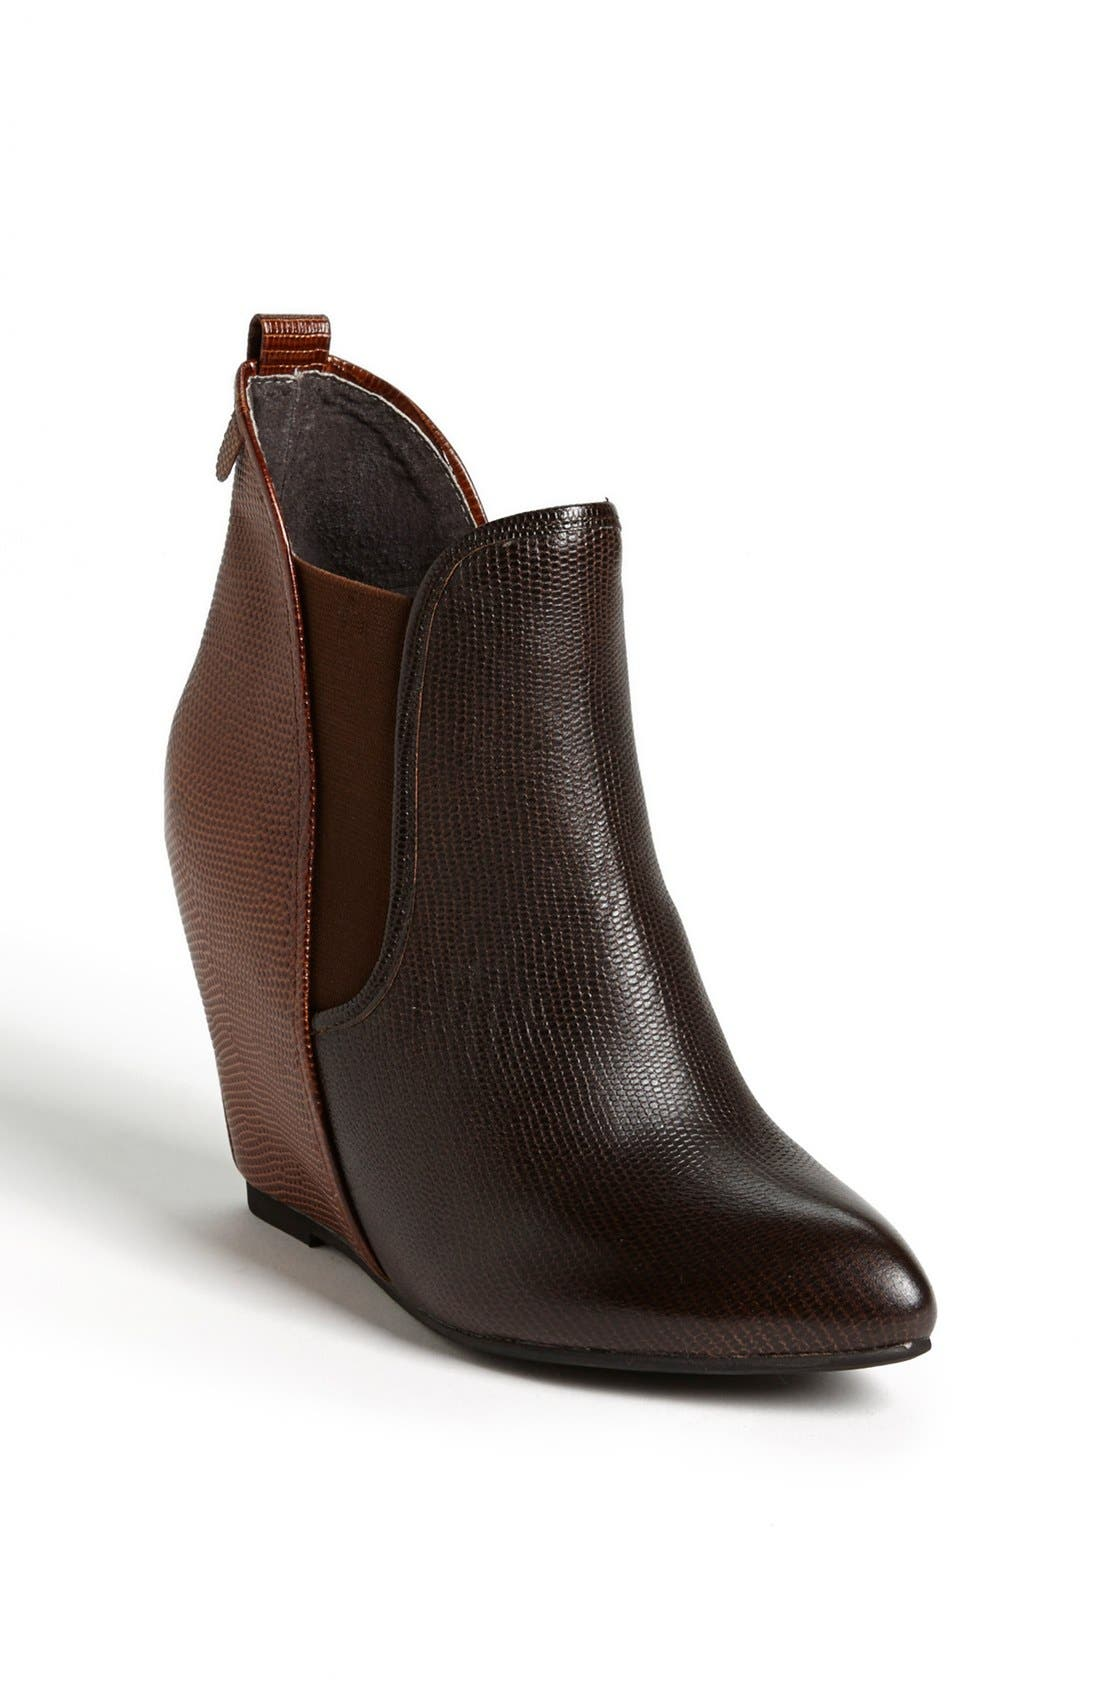 Alternate Image 1 Selected - Jeffrey Campbell 'Harrison' Bootie